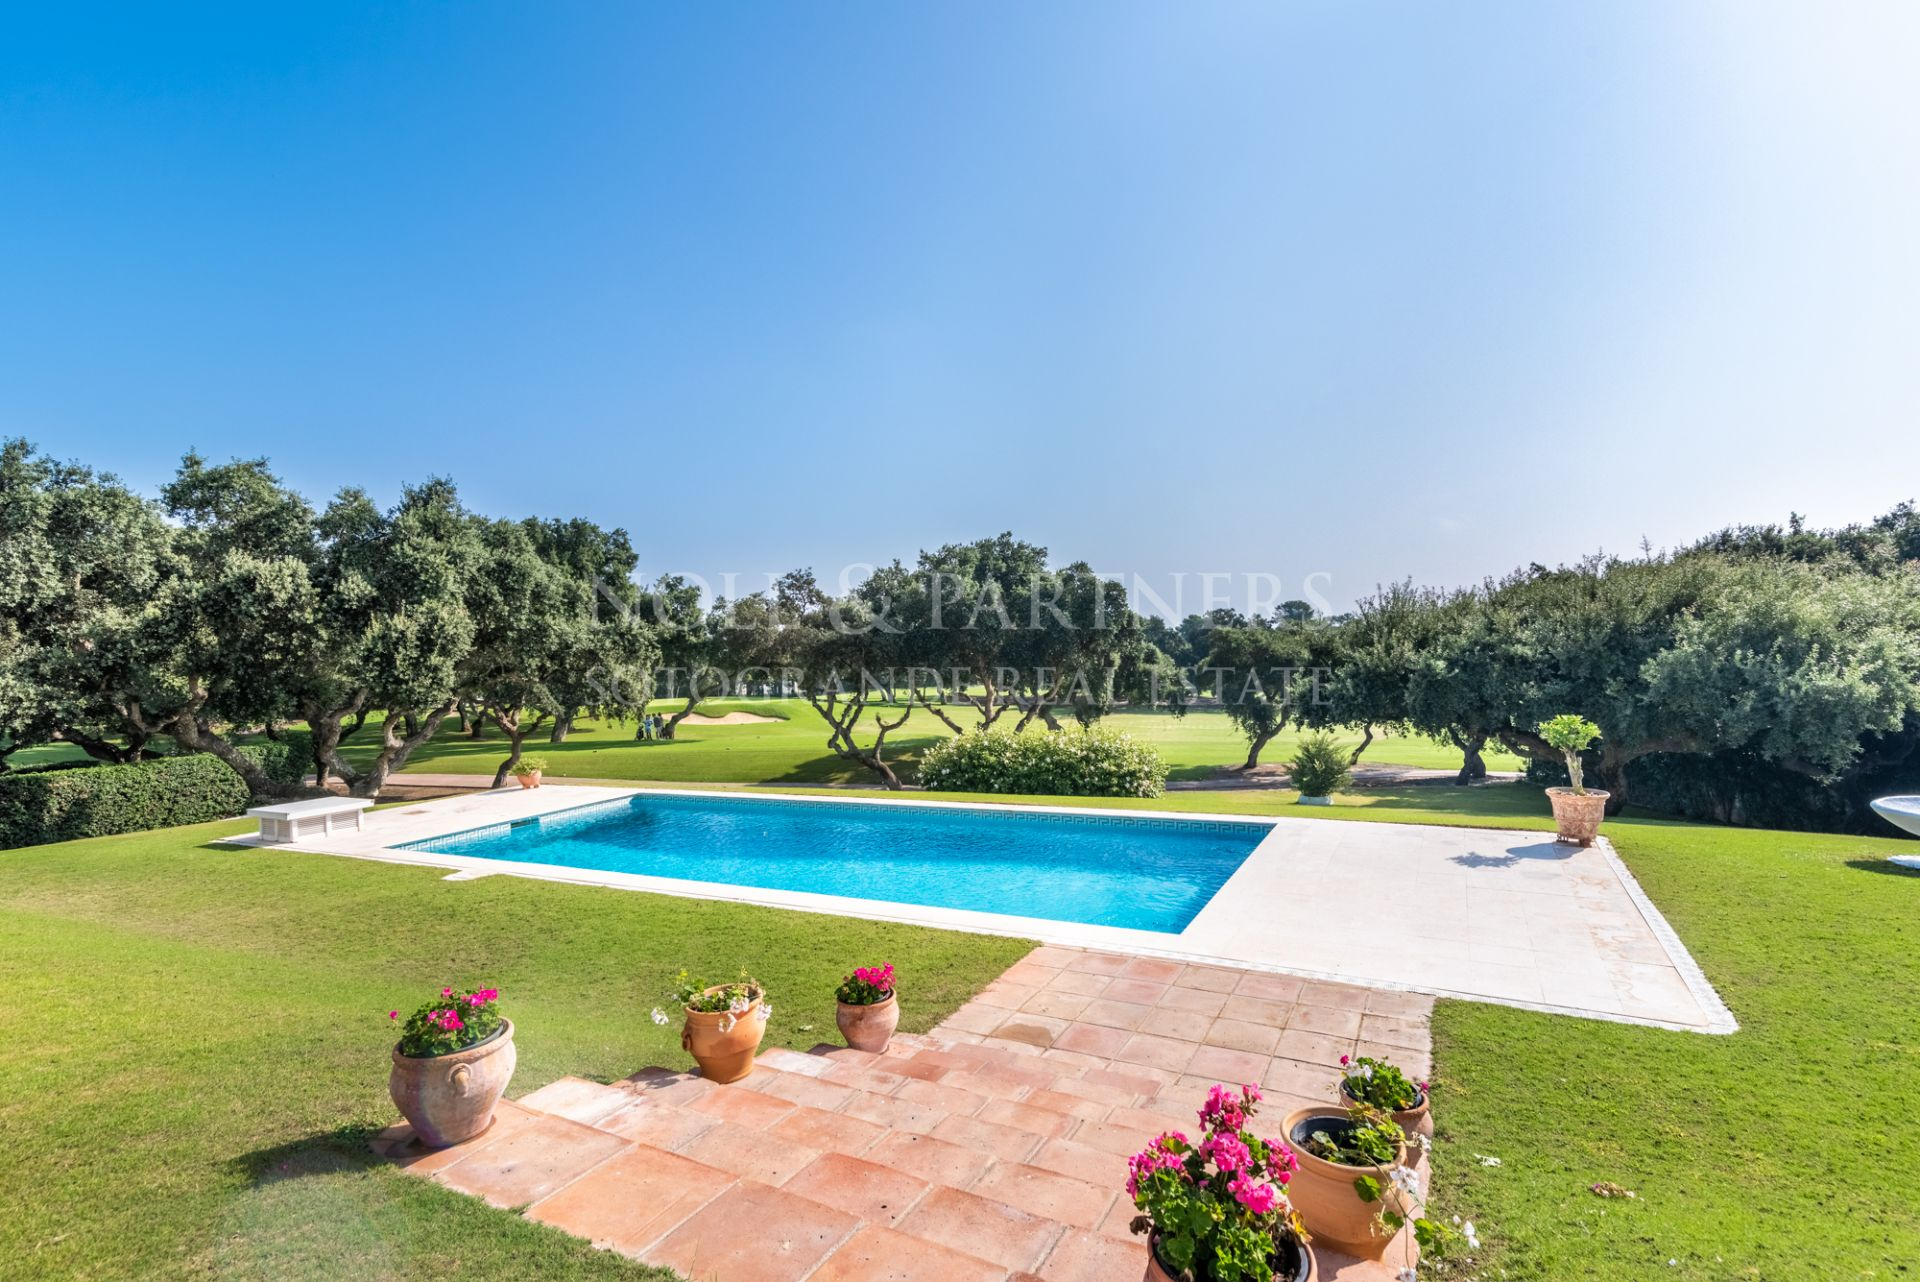 Sotogrande, Villa in Kings and Queens for sale front line golf